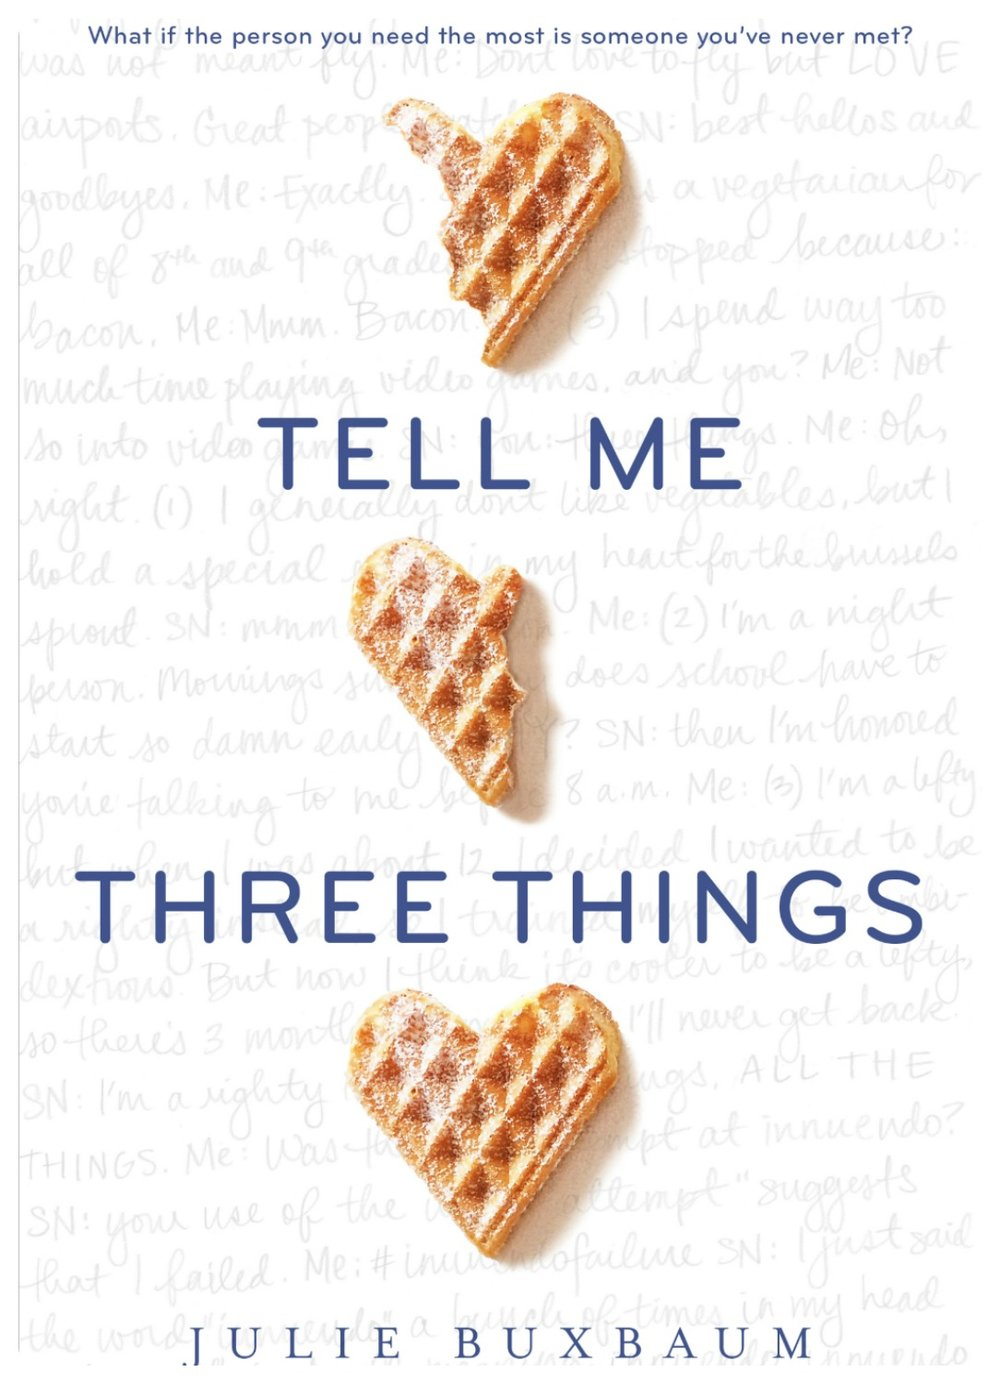 TELL ME THREE THINGS by Julie Buxbaum.